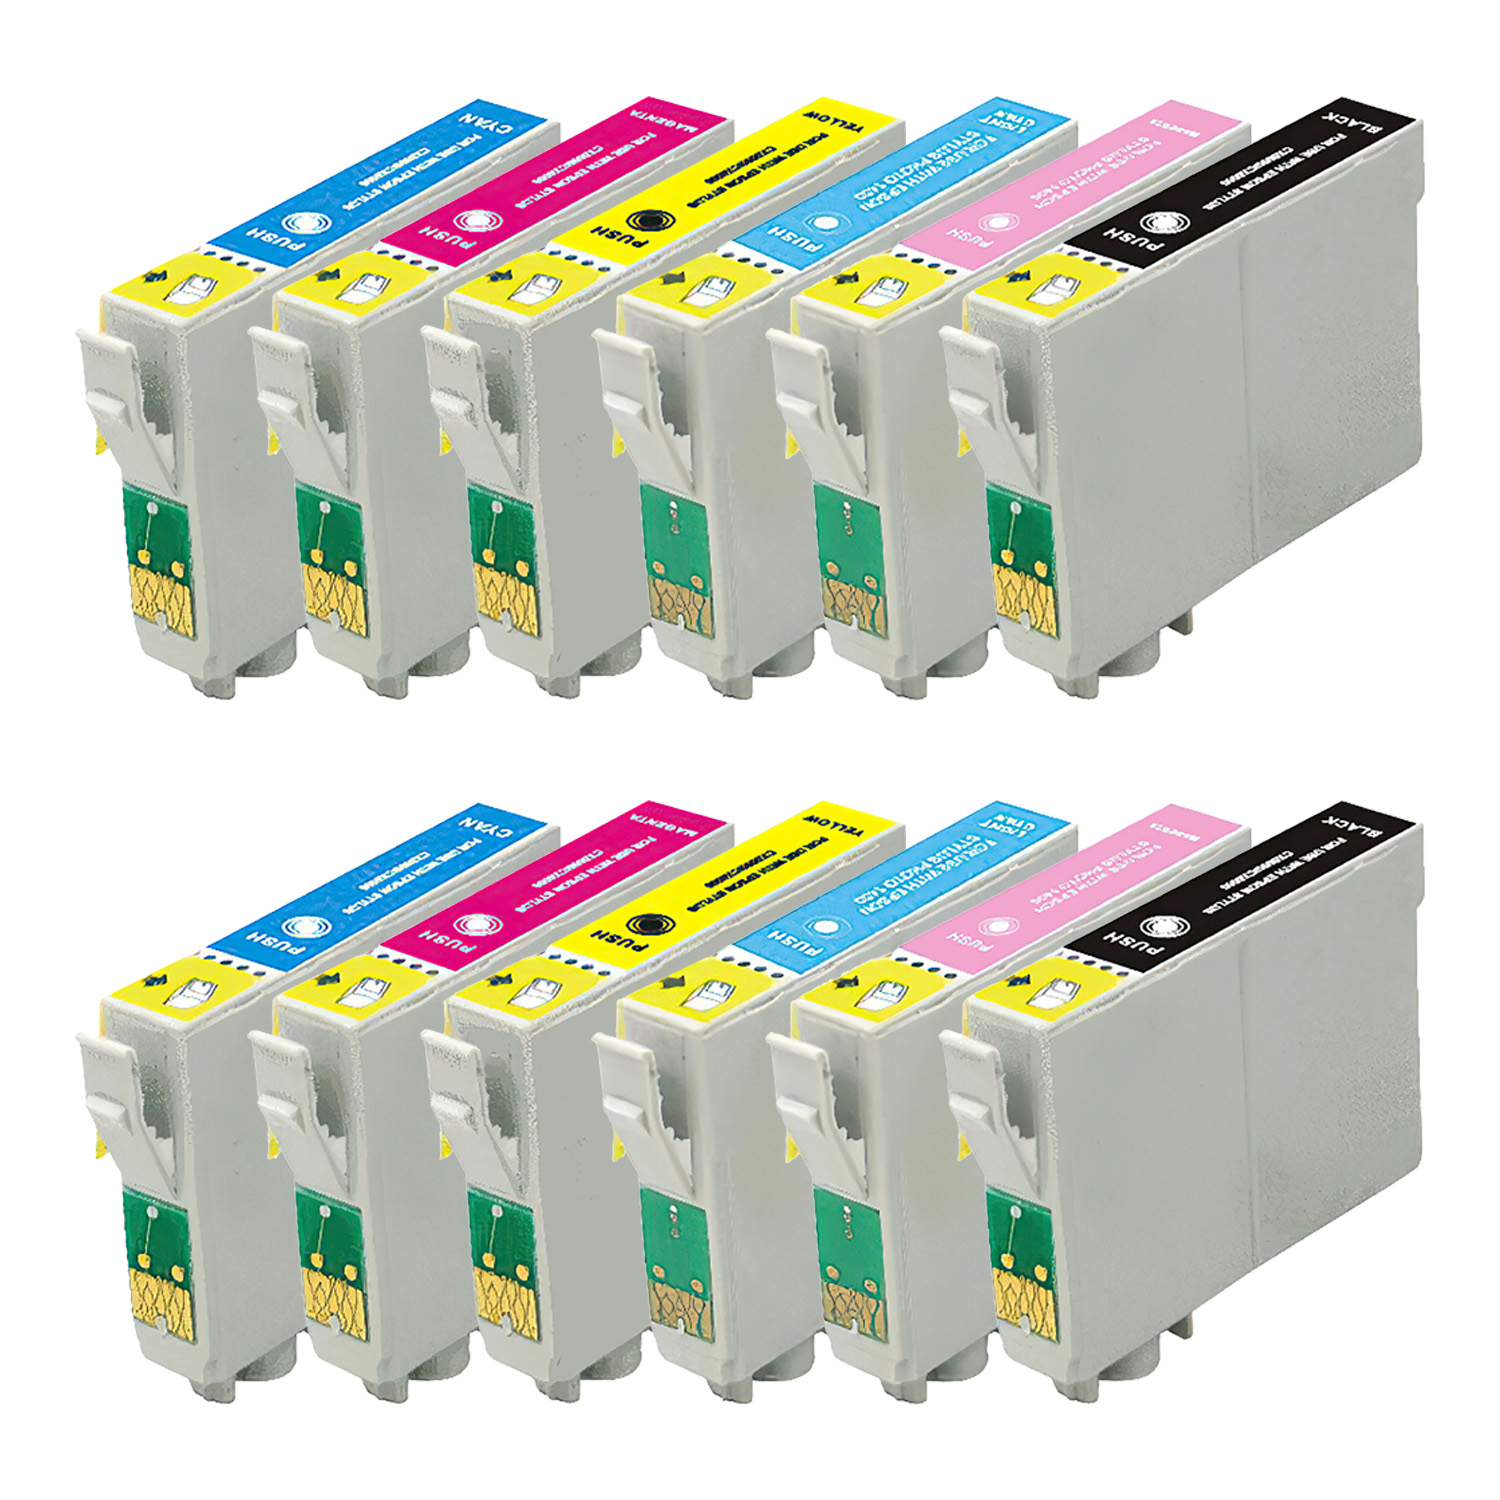 Remanufactured Epson 33 Inkjet Pack - 12 Cartridges